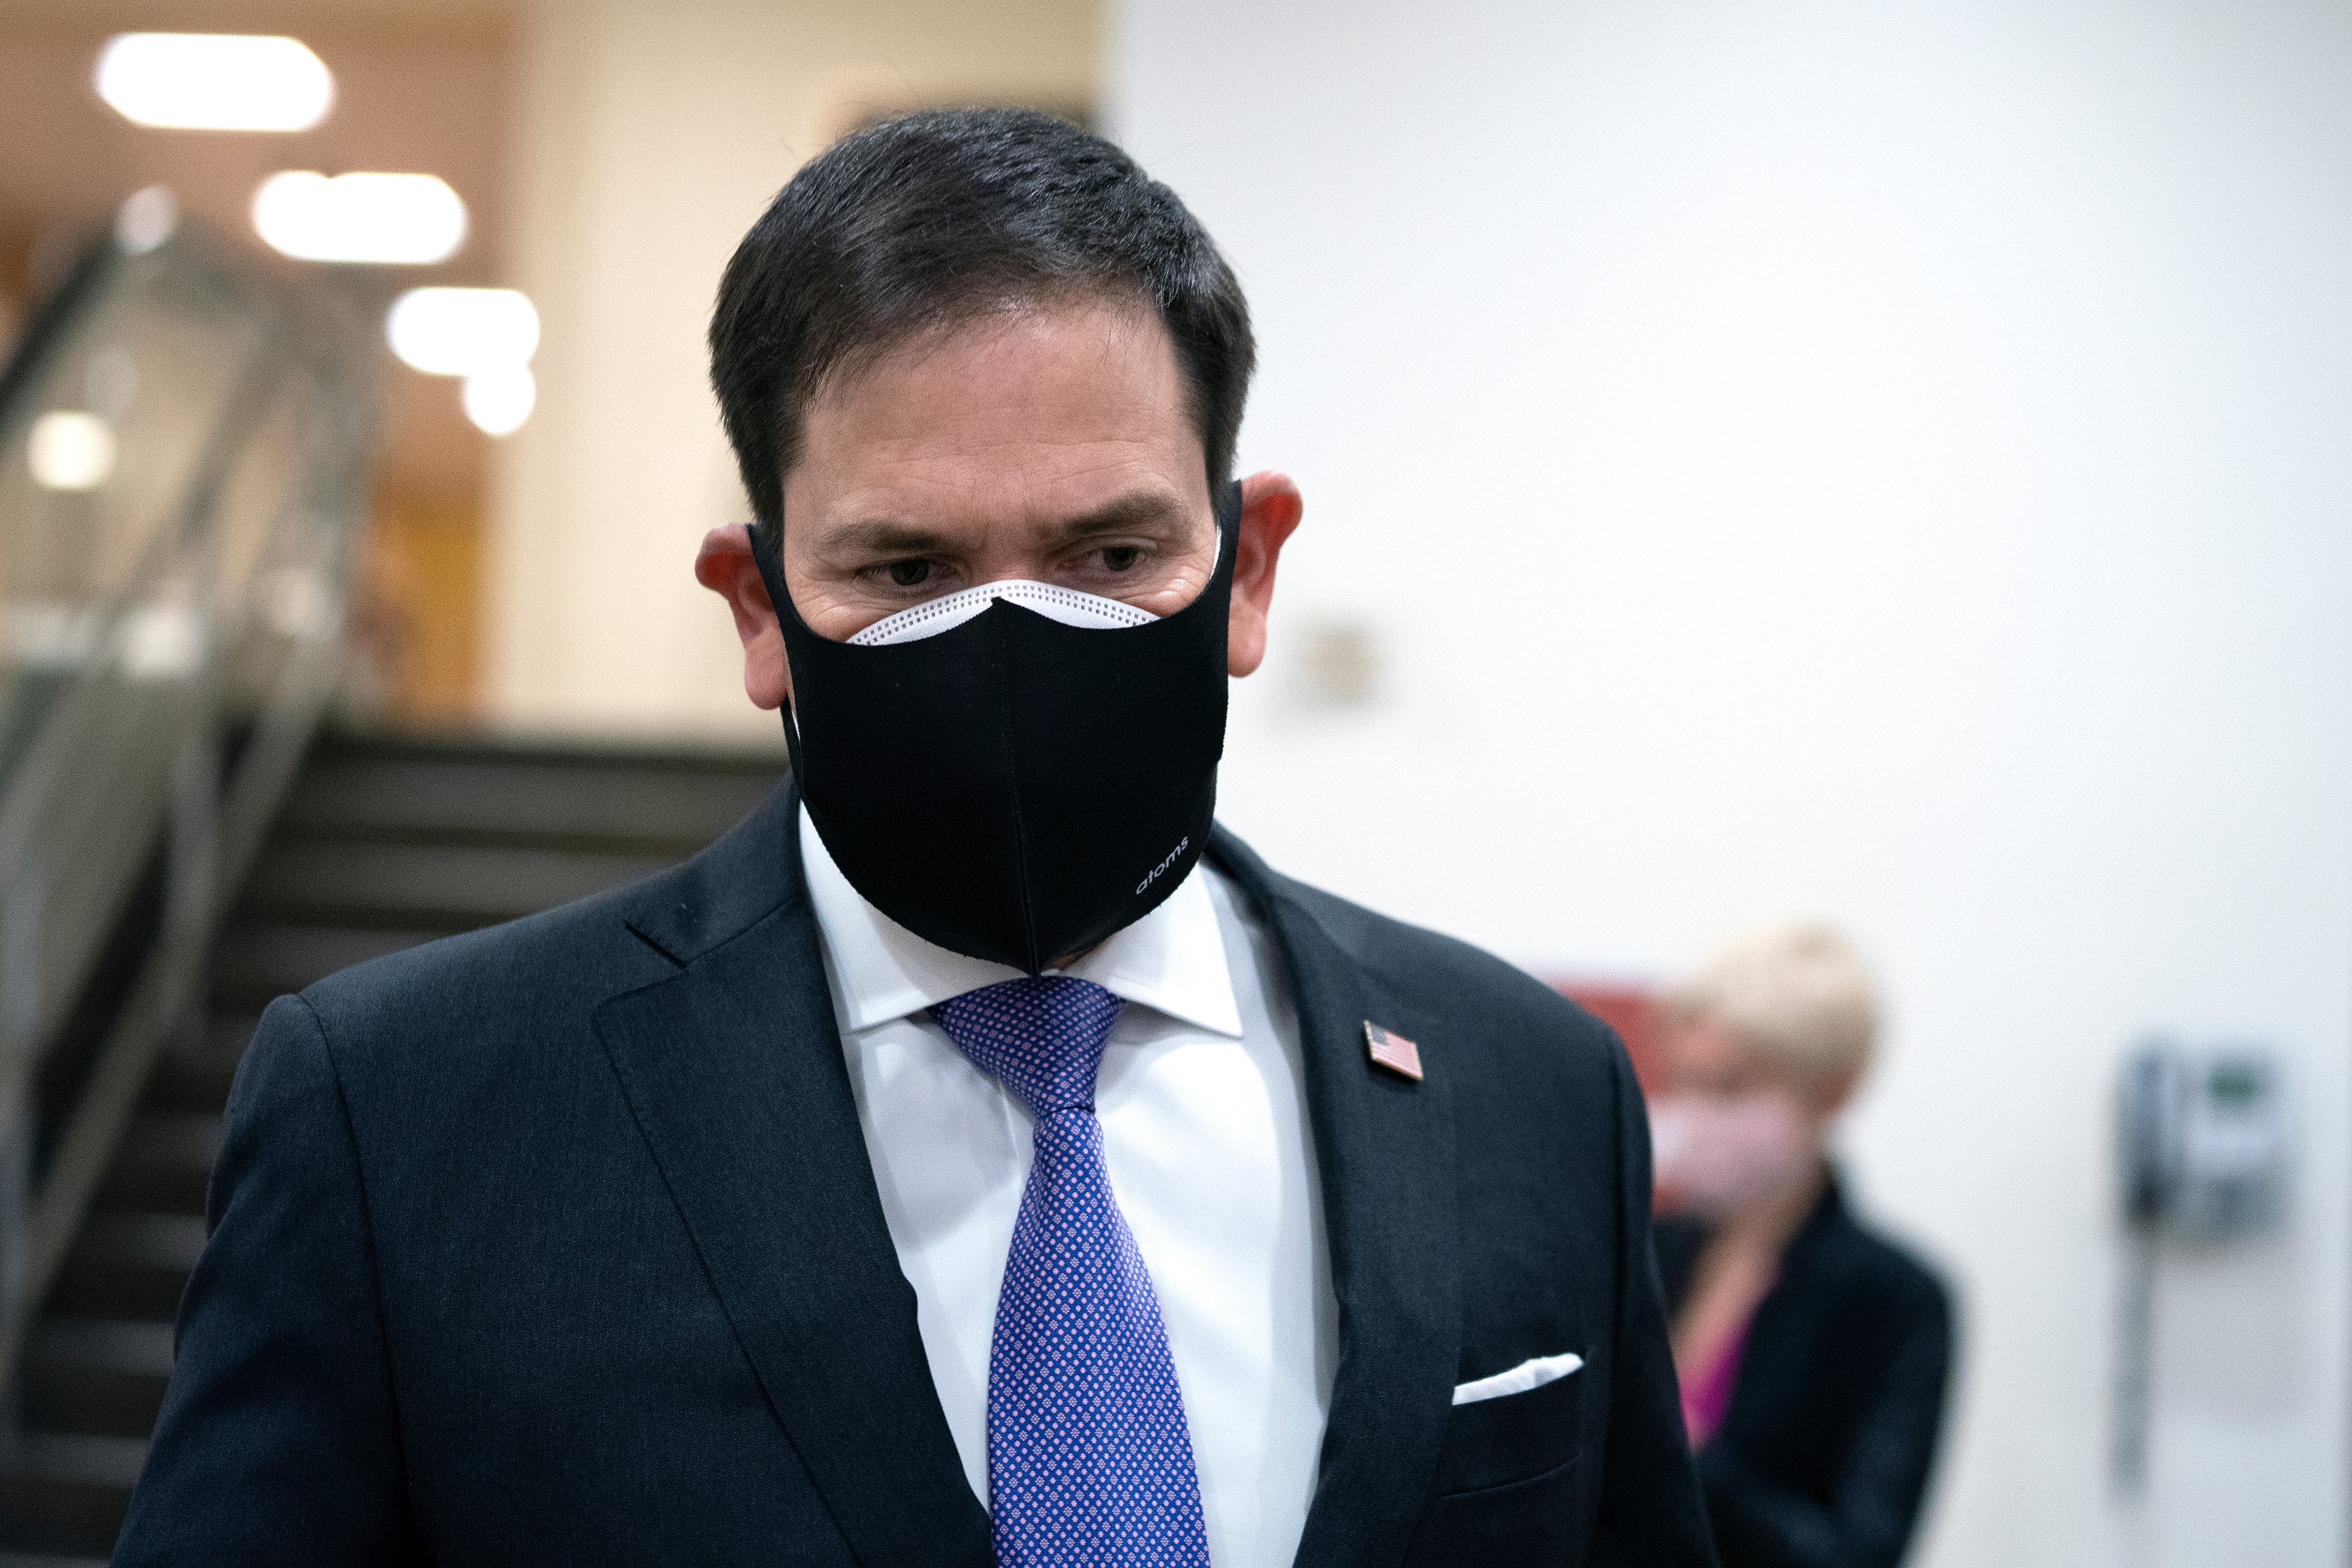 Live politics updates: Rubio goes after Fauci on Twitter; Trump signs COVID relief amid criticism for delay